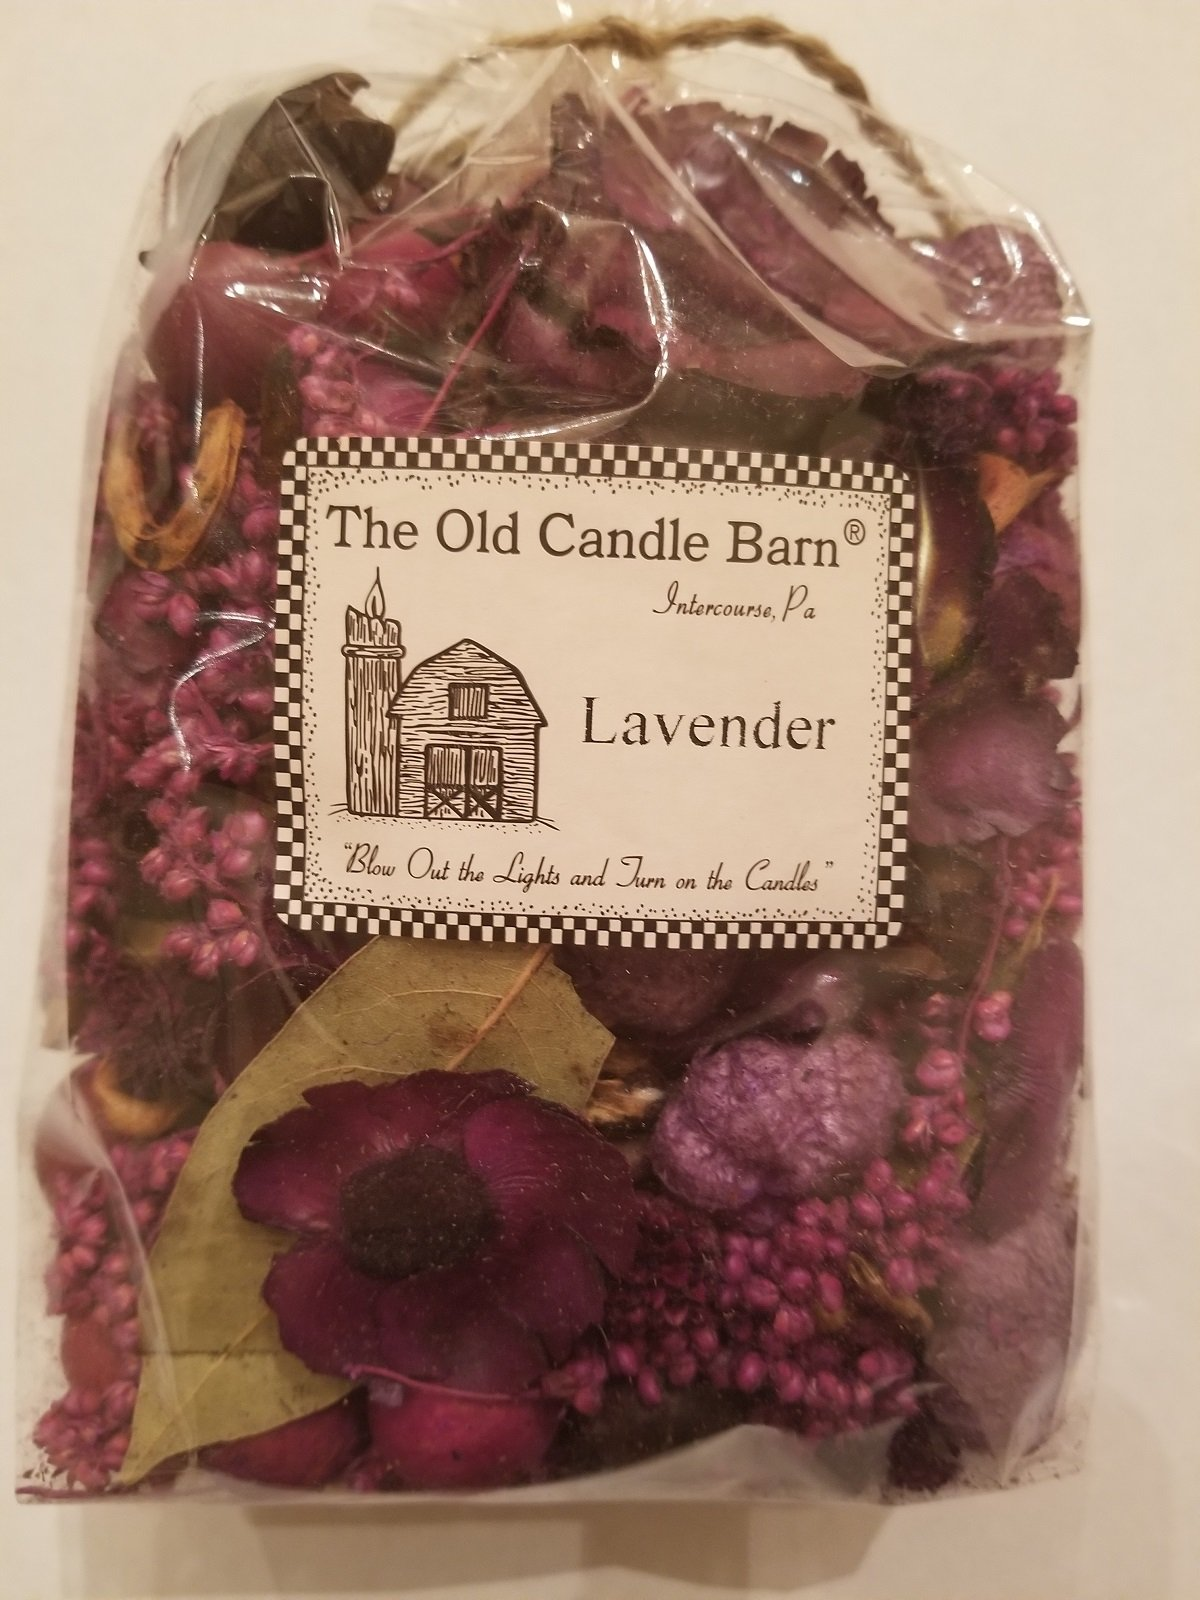 Old Candle Barn Lavender Potpourri Large Bag - Perfect for Spring and Summer But Can Be Used All Year Long - Decoration or Bowl Filler by Old Candle Barn (Image #1)